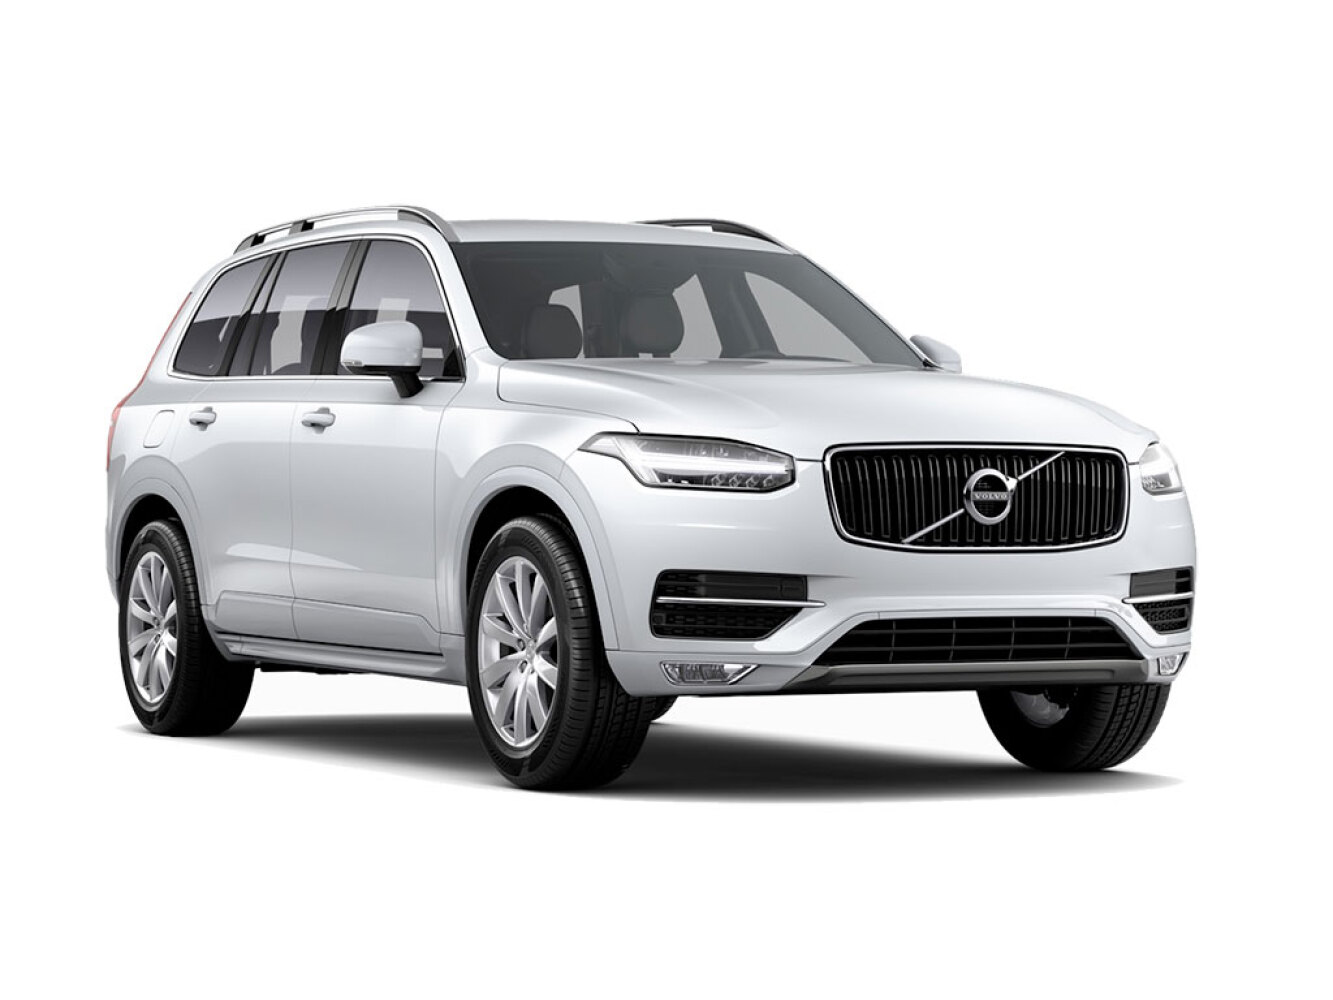 new volvo xc90 2 0 t5 250 momentum 5dr awd gtron petrol. Black Bedroom Furniture Sets. Home Design Ideas